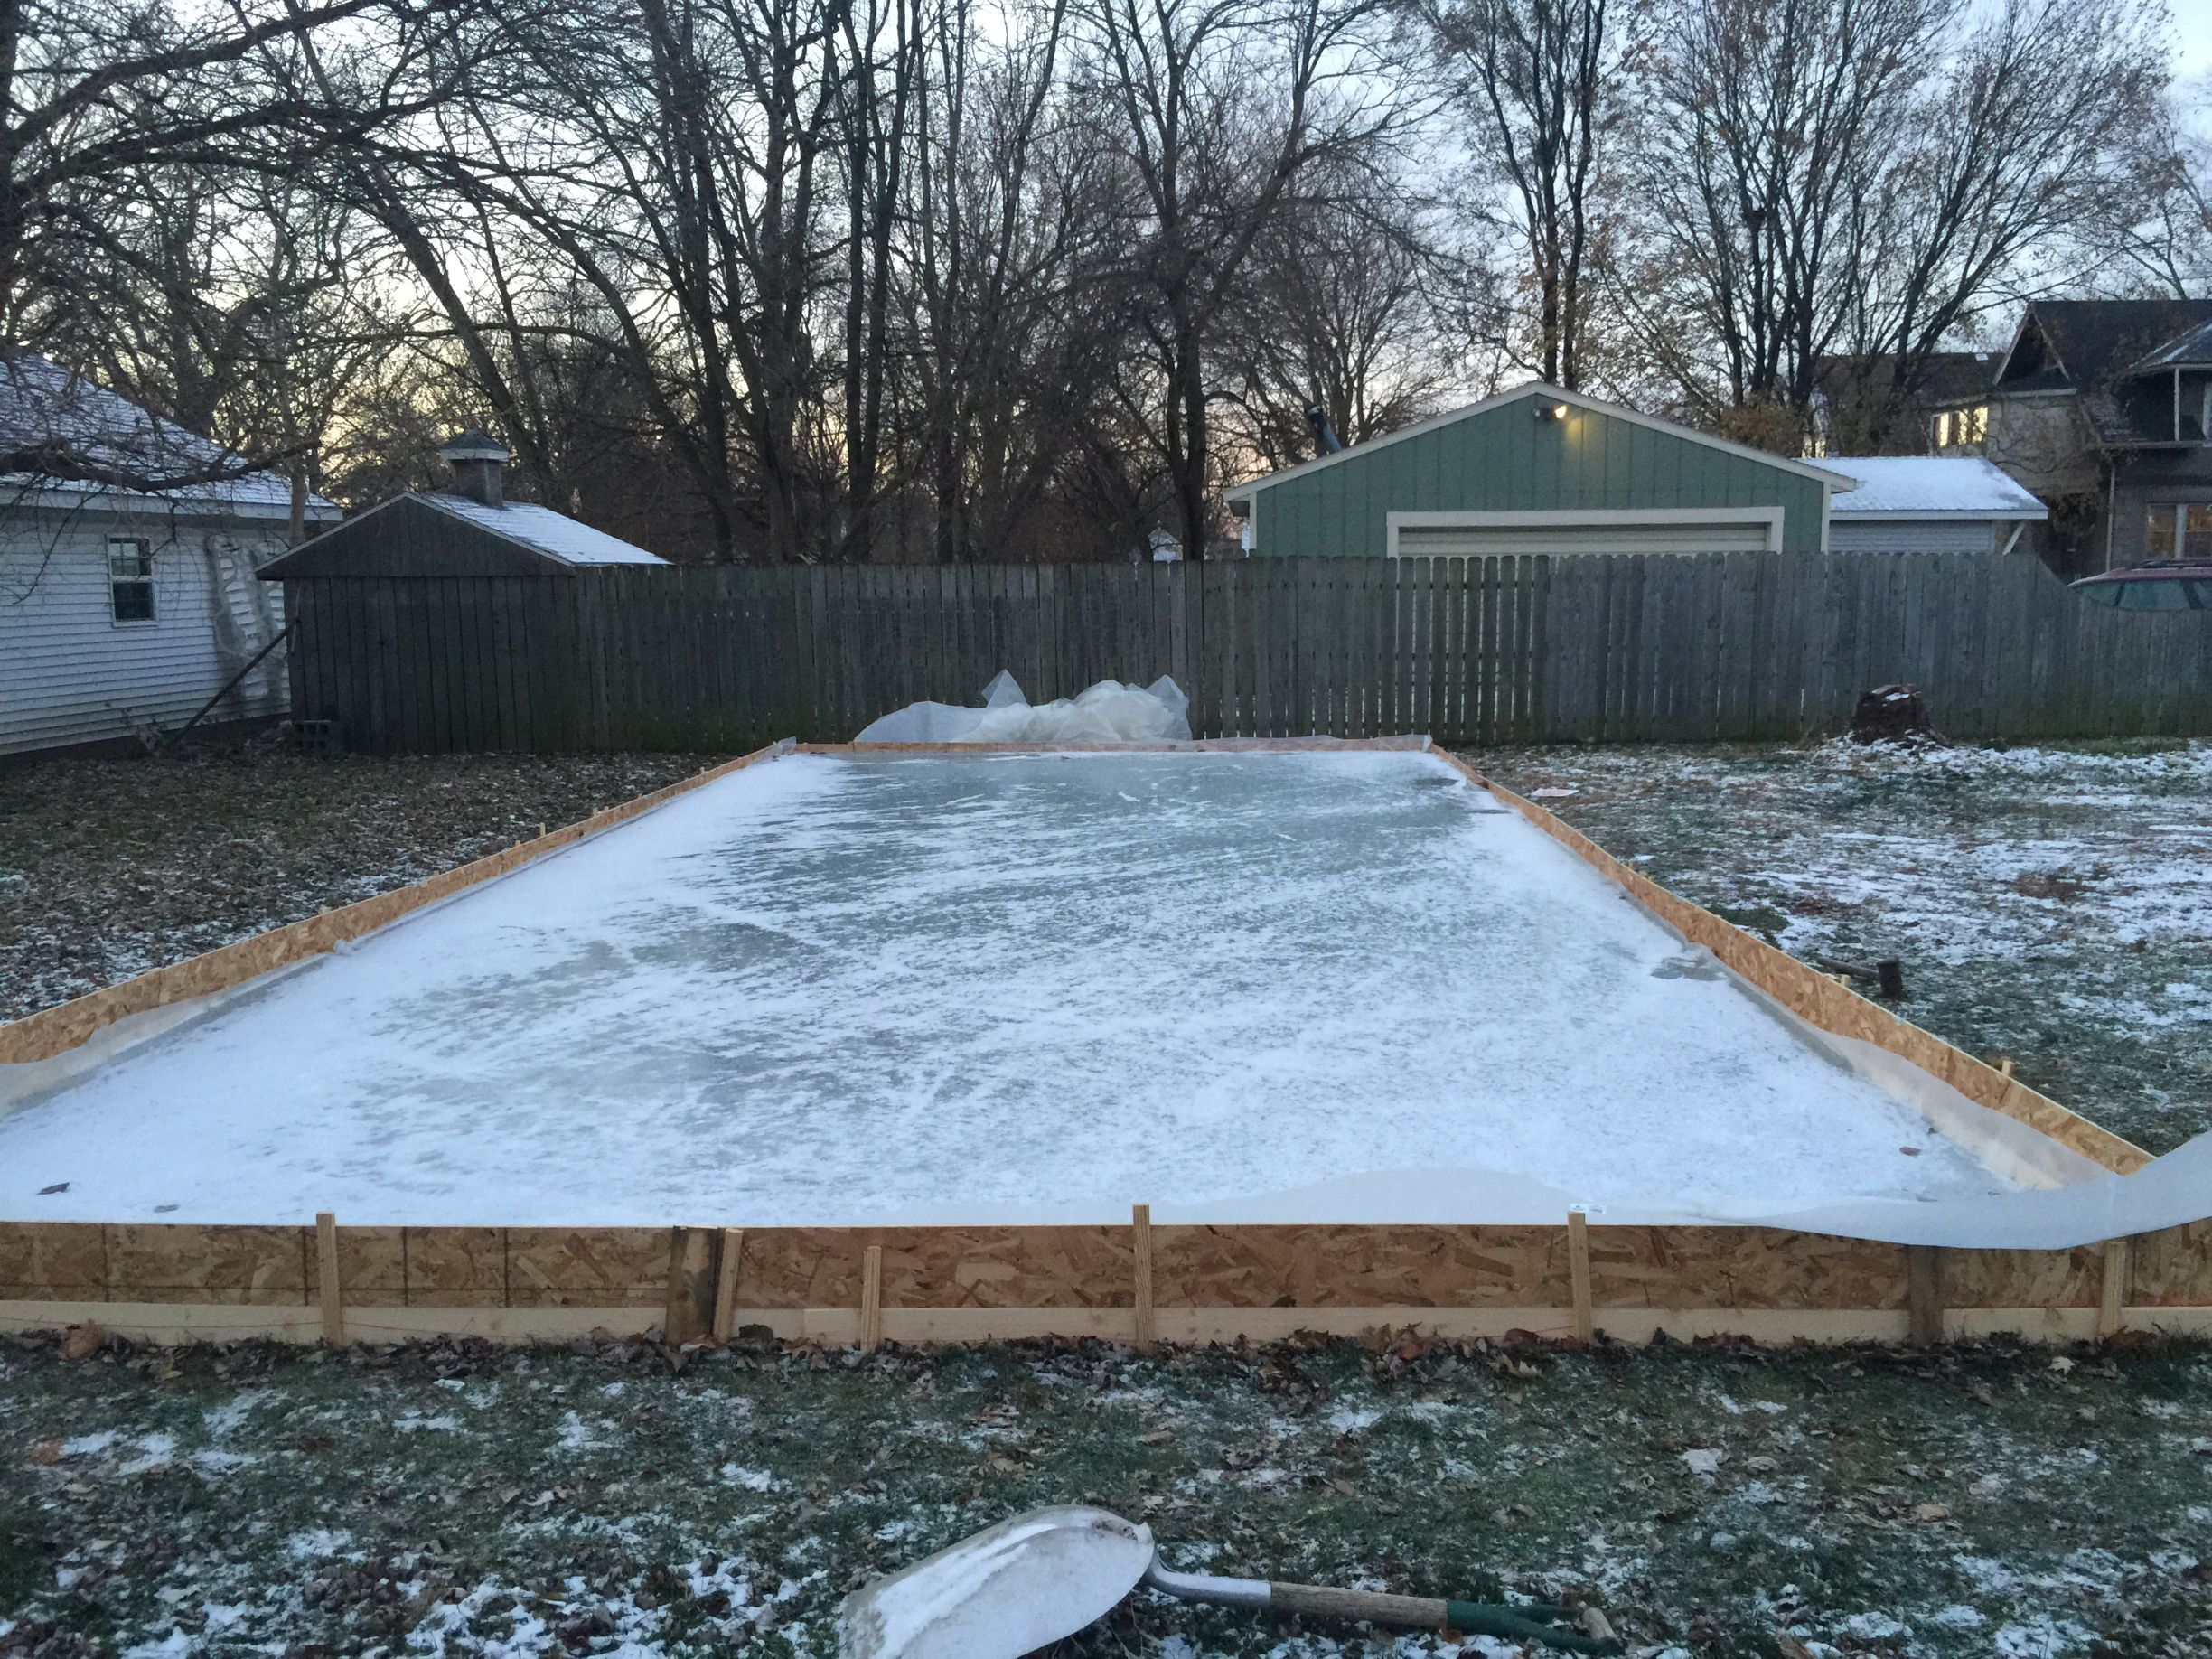 How To Make An Ice Skating Rink In Your Backyard diy backyard ice rink | make: